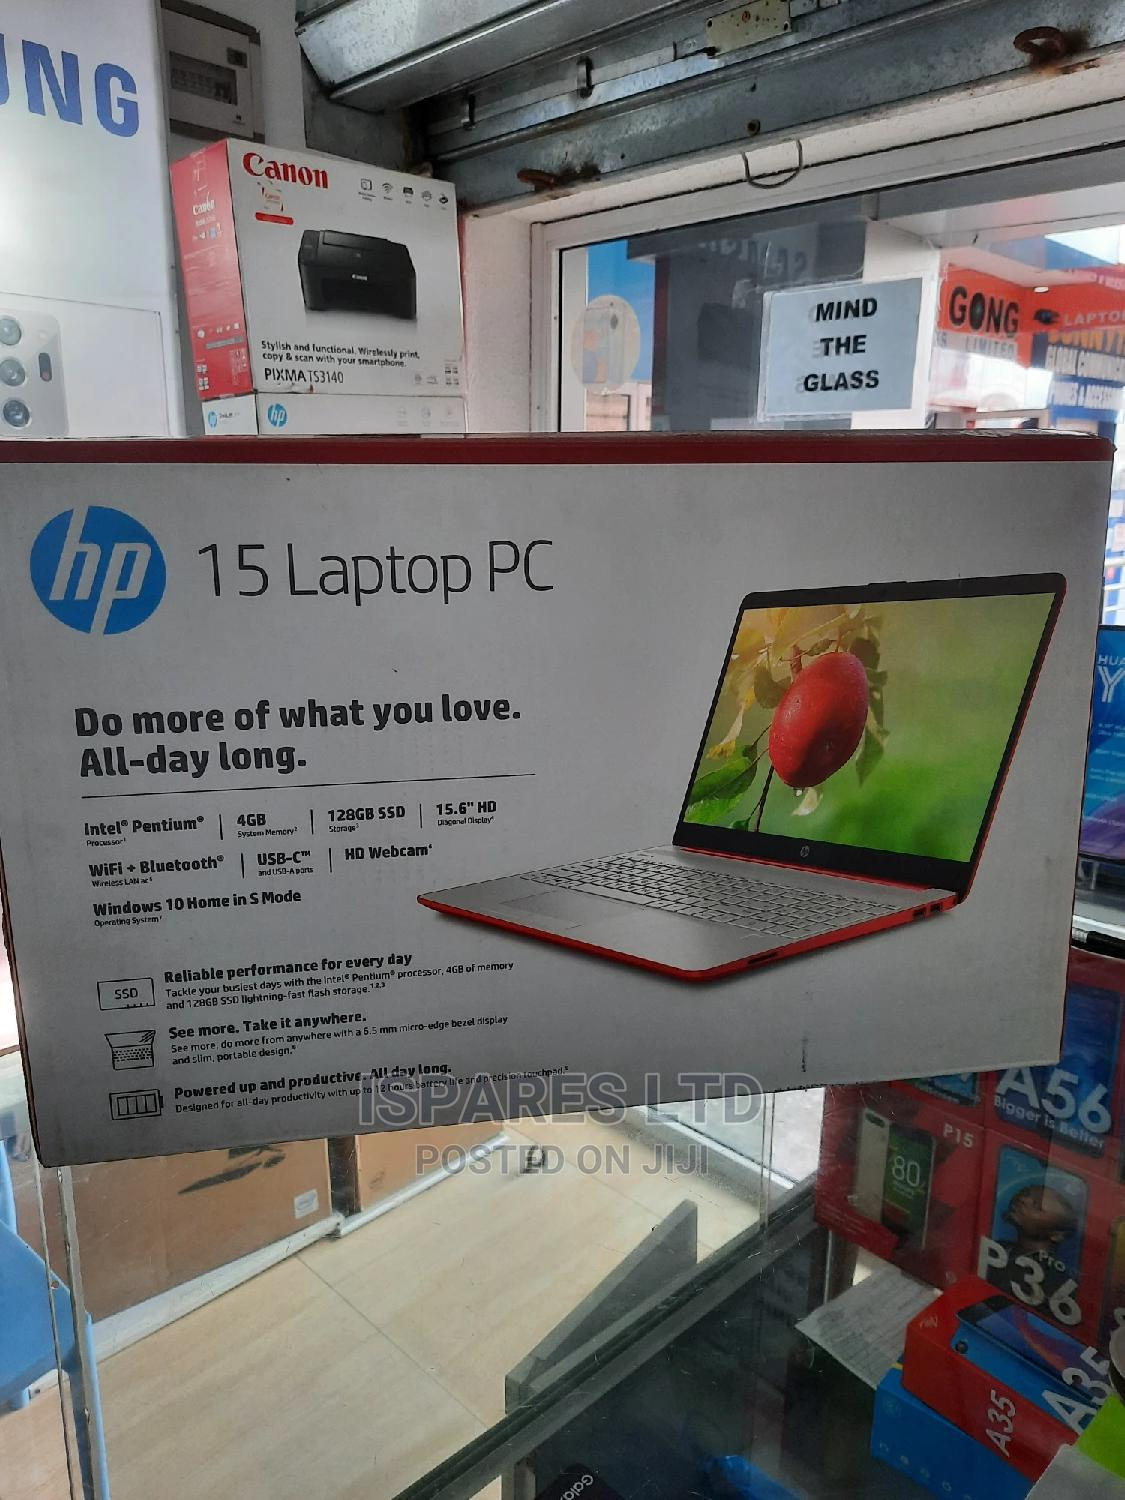 New Laptop HP 4GB Intel Pentium SSD 128GB | Laptops & Computers for sale in Obio-Akpor, Rivers State, Nigeria